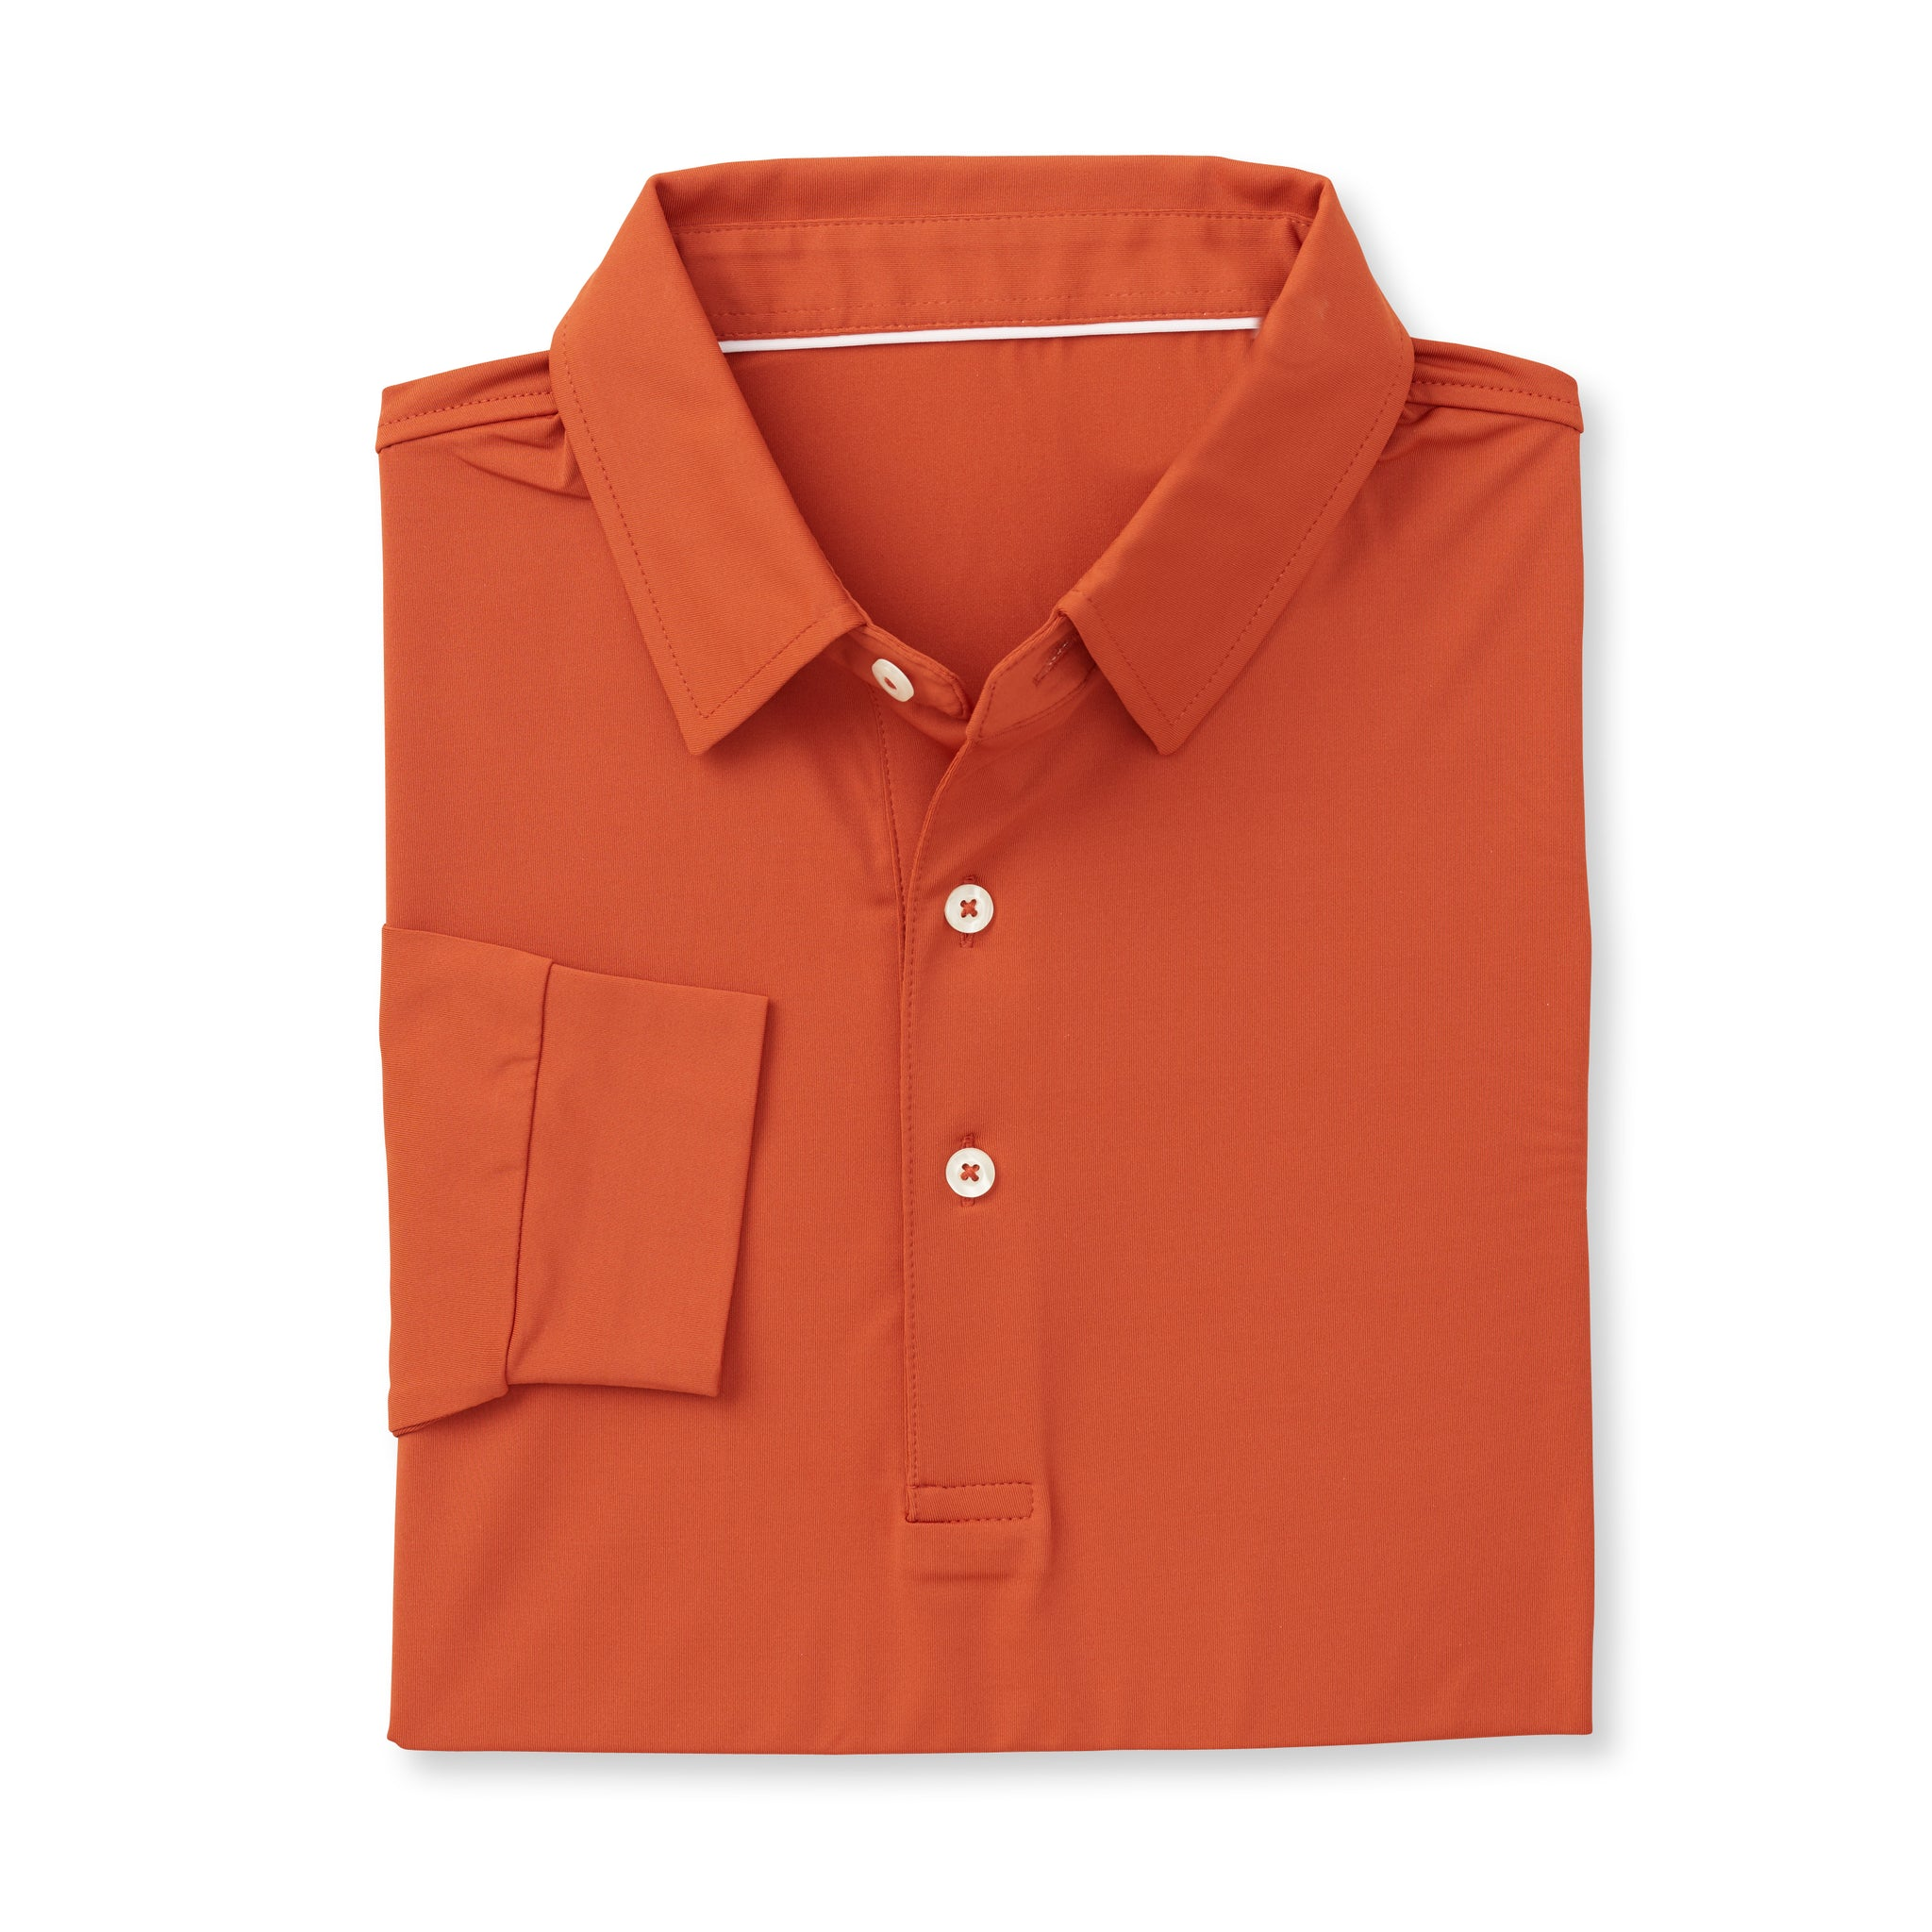 ECOTEC Long Sleeve Polo - Burnt Orange IS66001